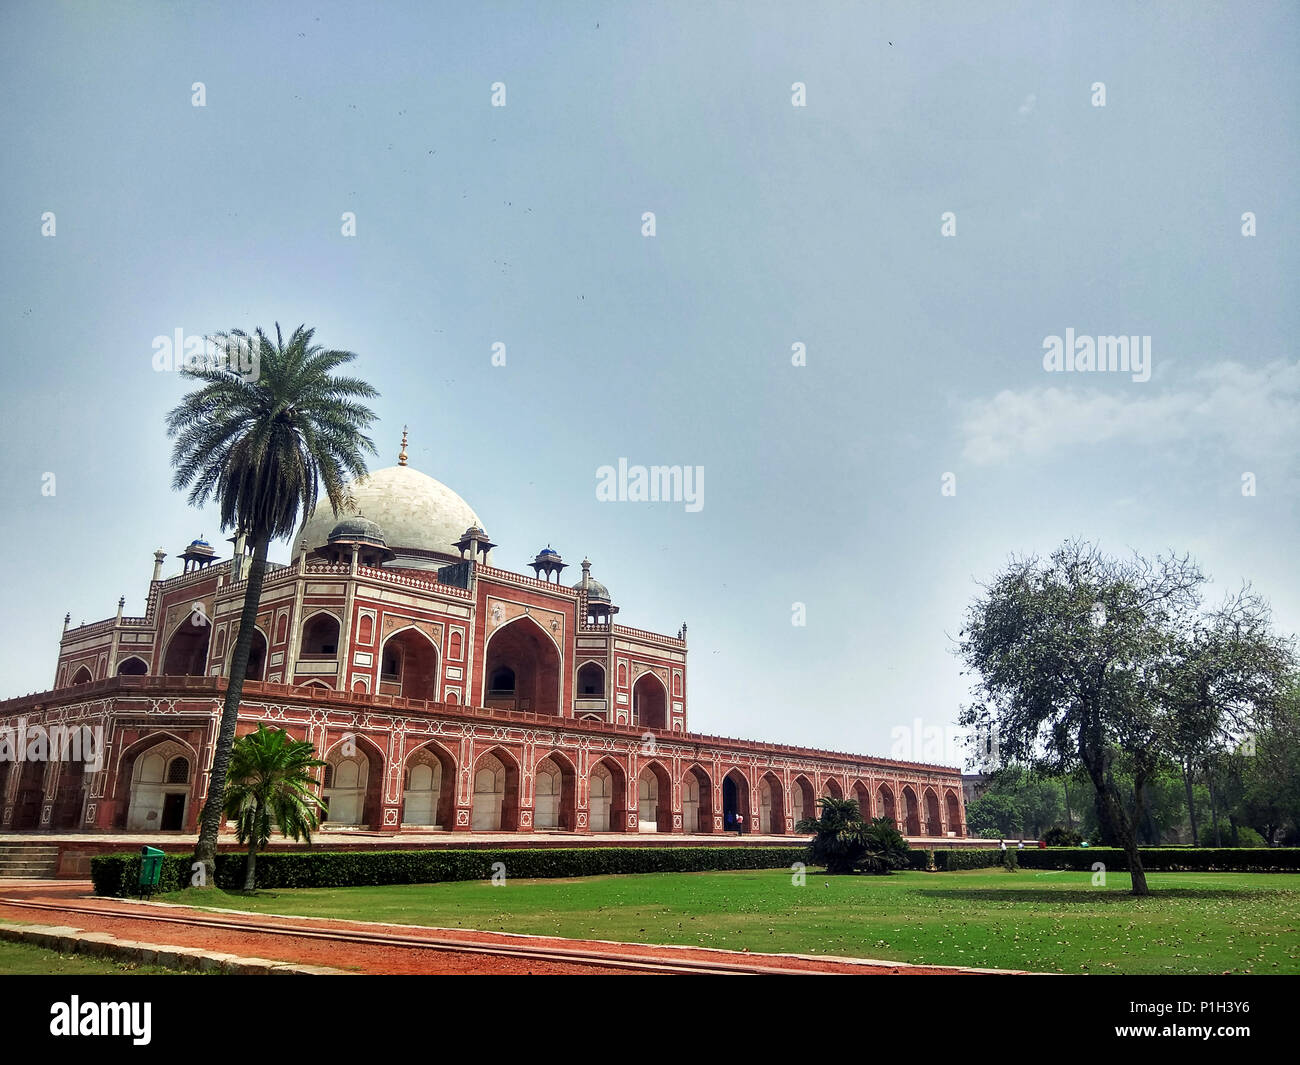 Side view of epic Humayun's Tomb, New Delhi, India displaying great Indian architecture - Stock Image